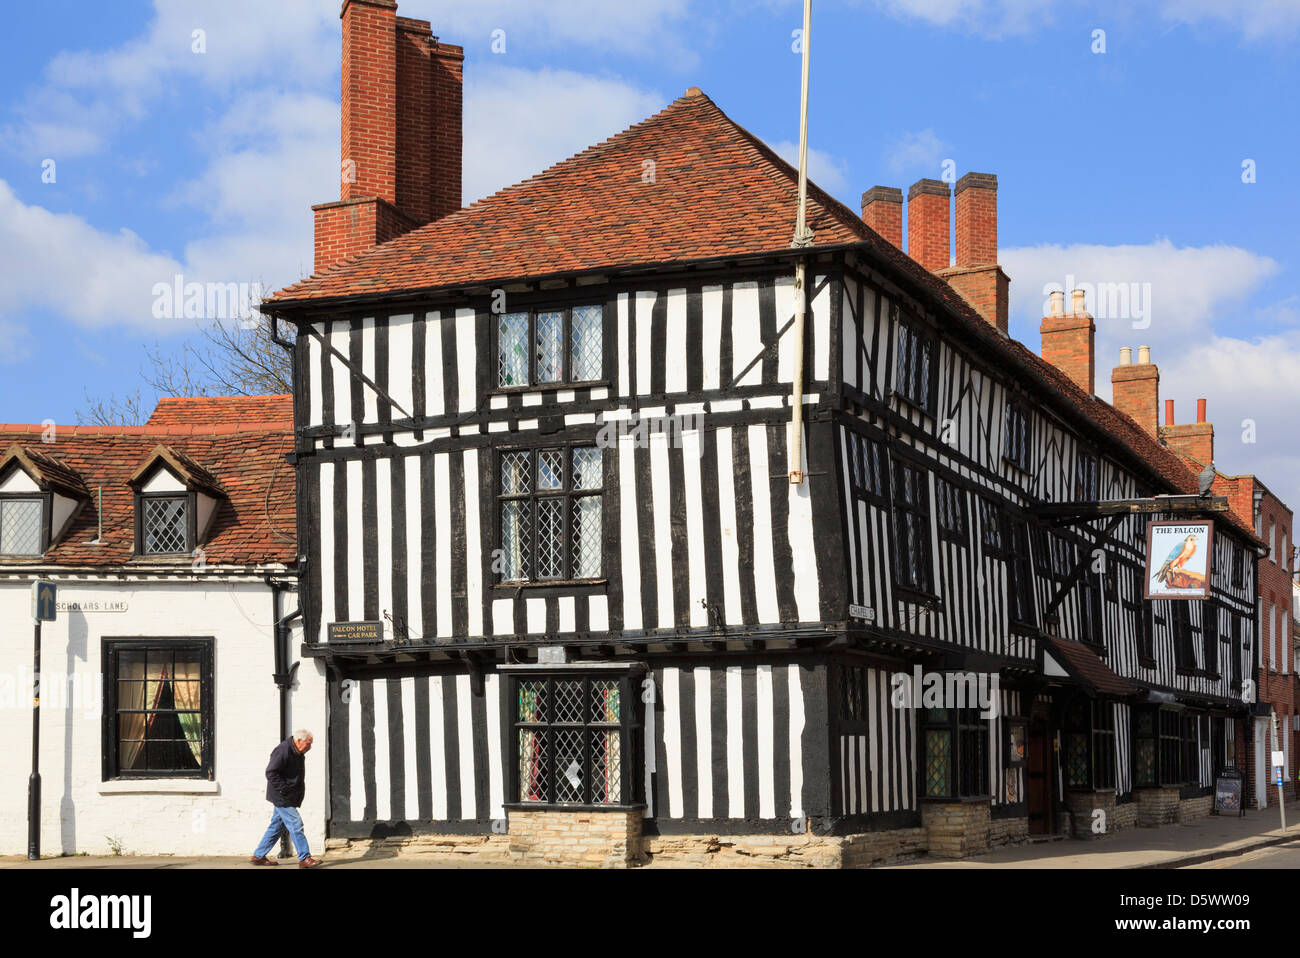 The Legacy Falcon Hotel is a 16th century black and white timbered building in Stratford-upon-Avon, Warwickshire, - Stock Image